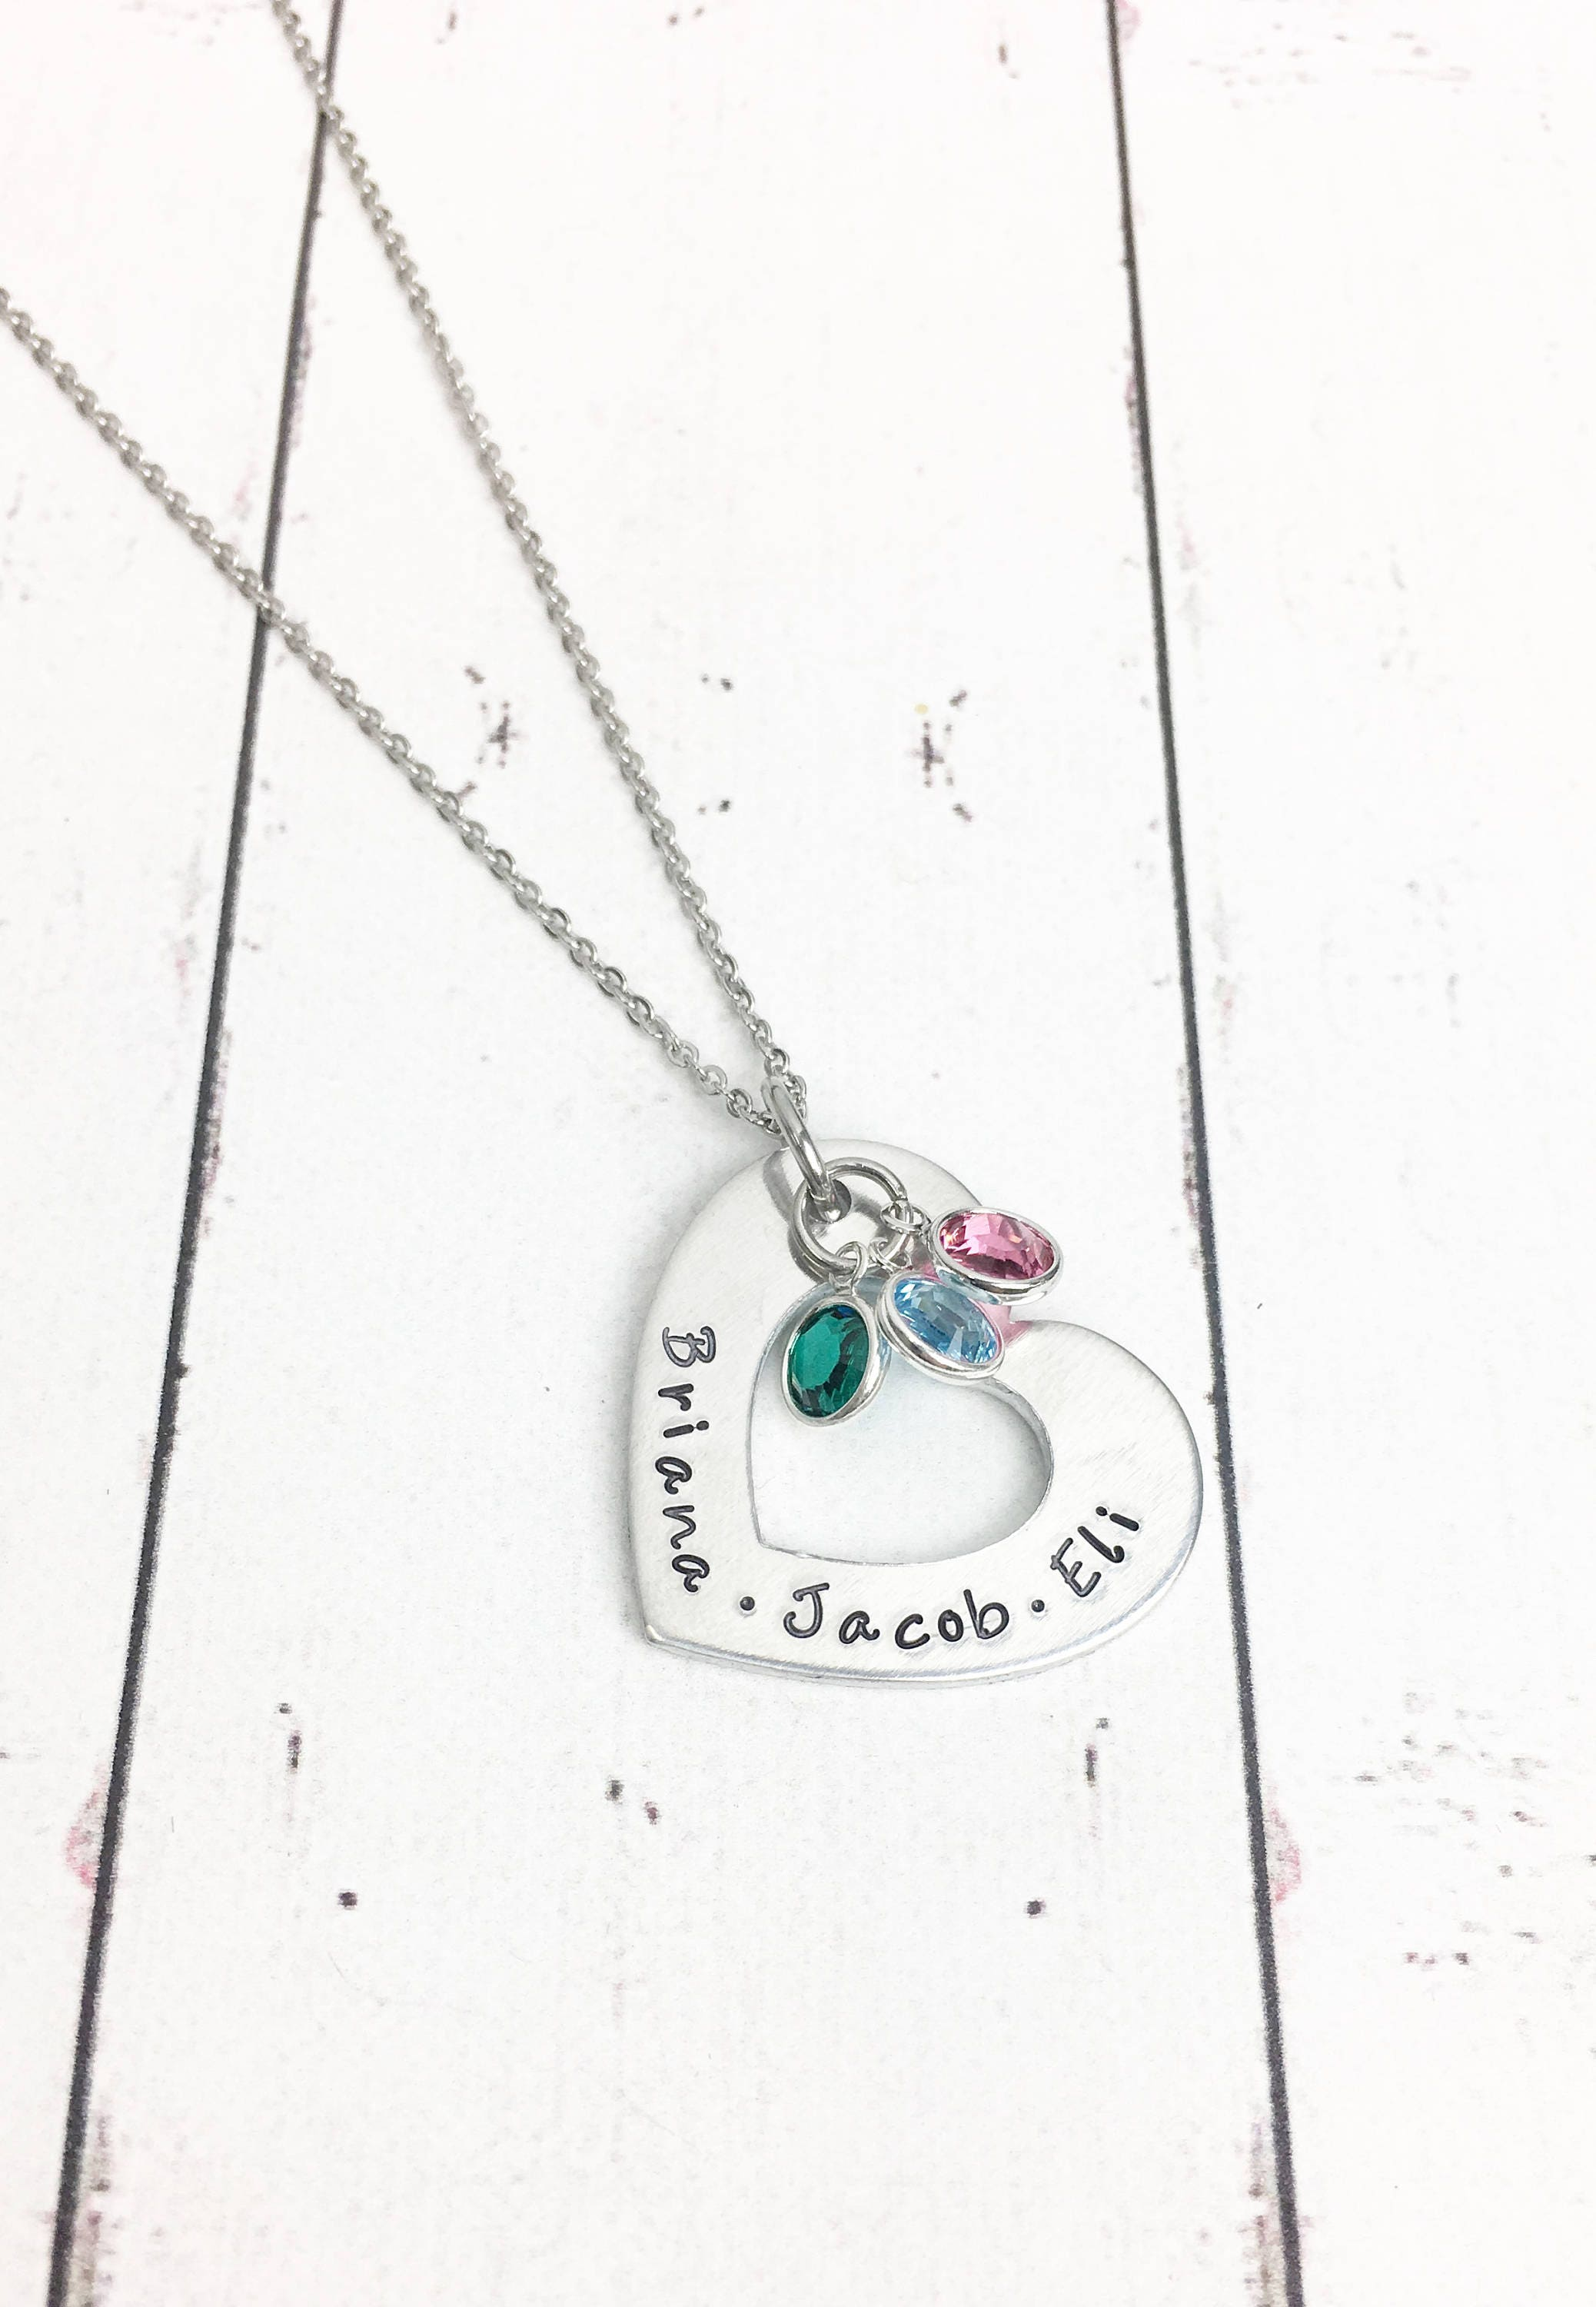 silver baby grandkid girl necklace com amazon sterling mm chain cubic color zirconia boy dp ruby brat birthstone july